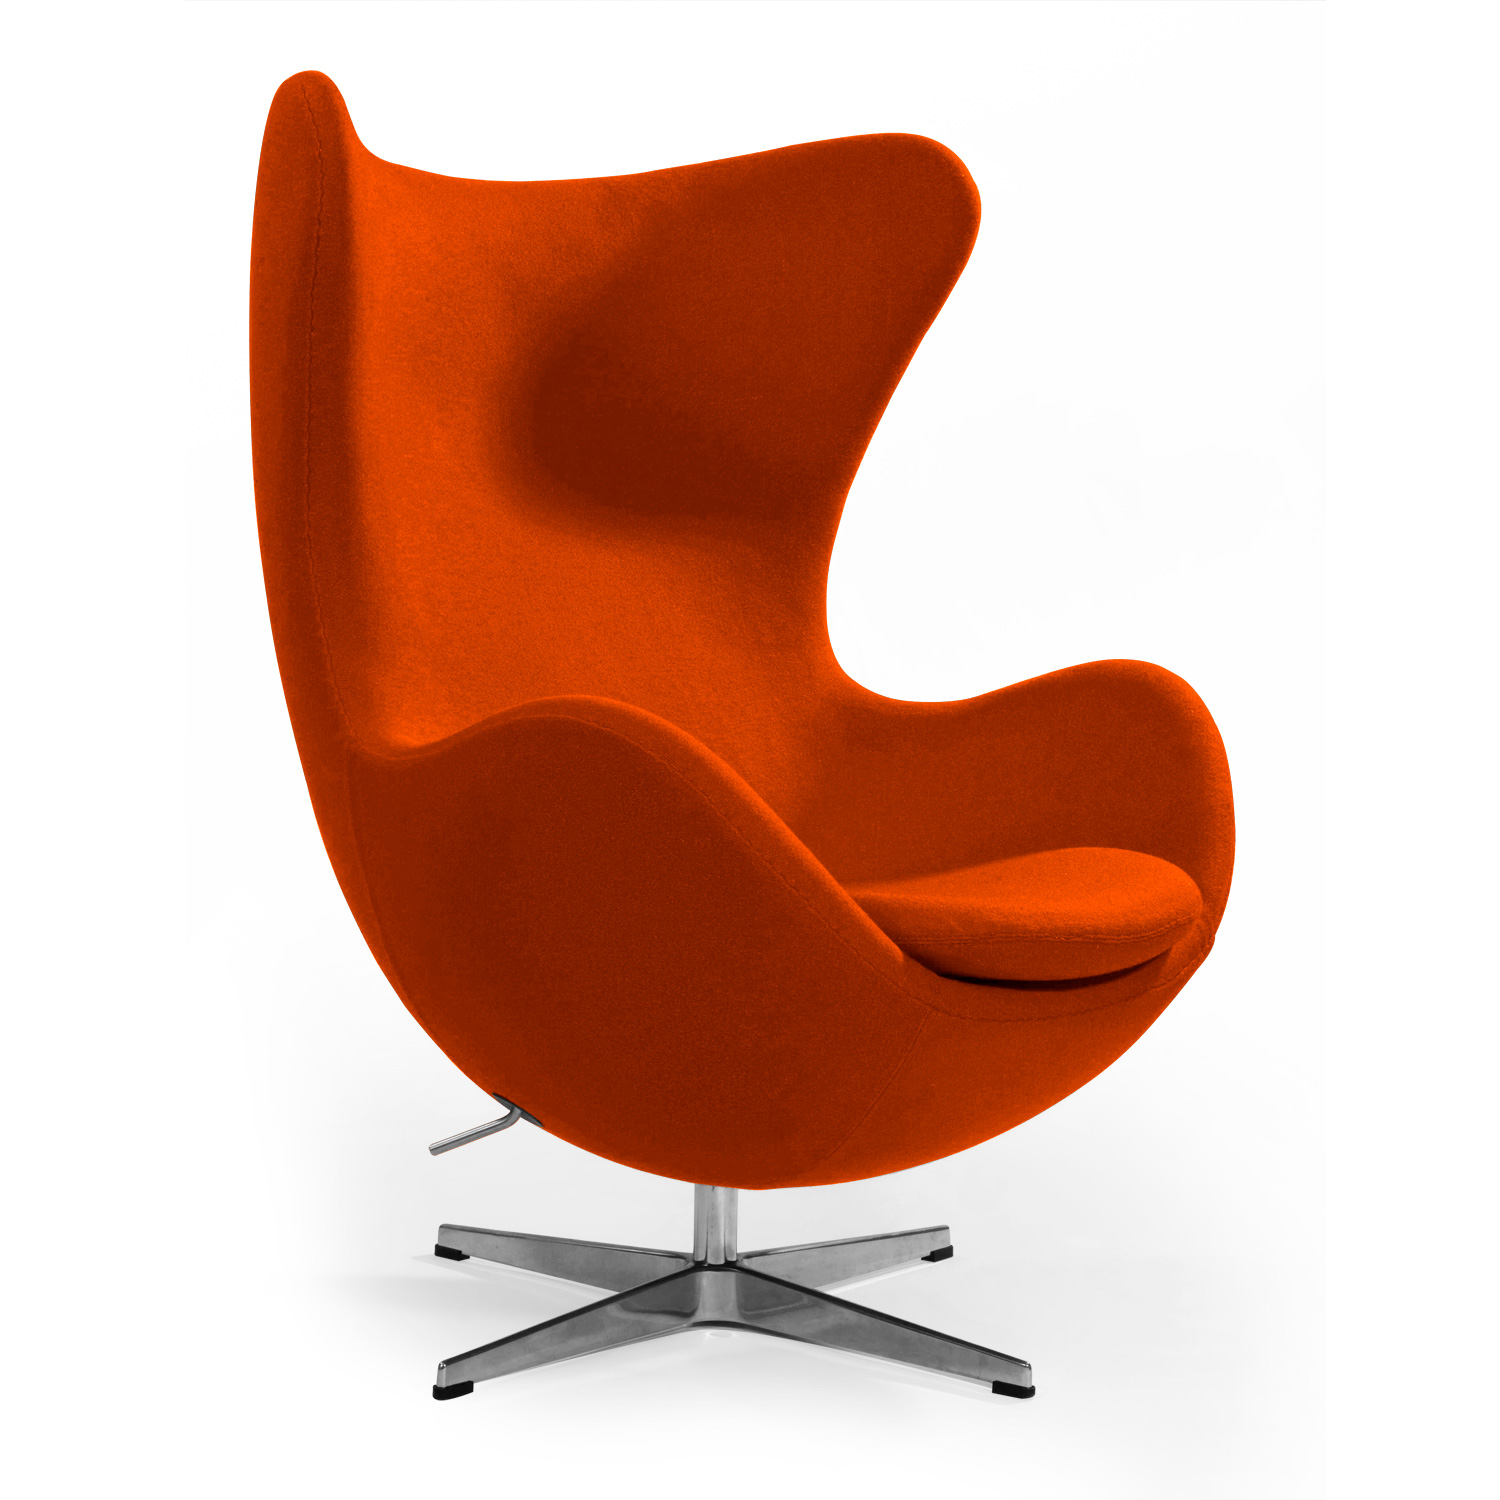 Brugliera Mid Century Chair Egg